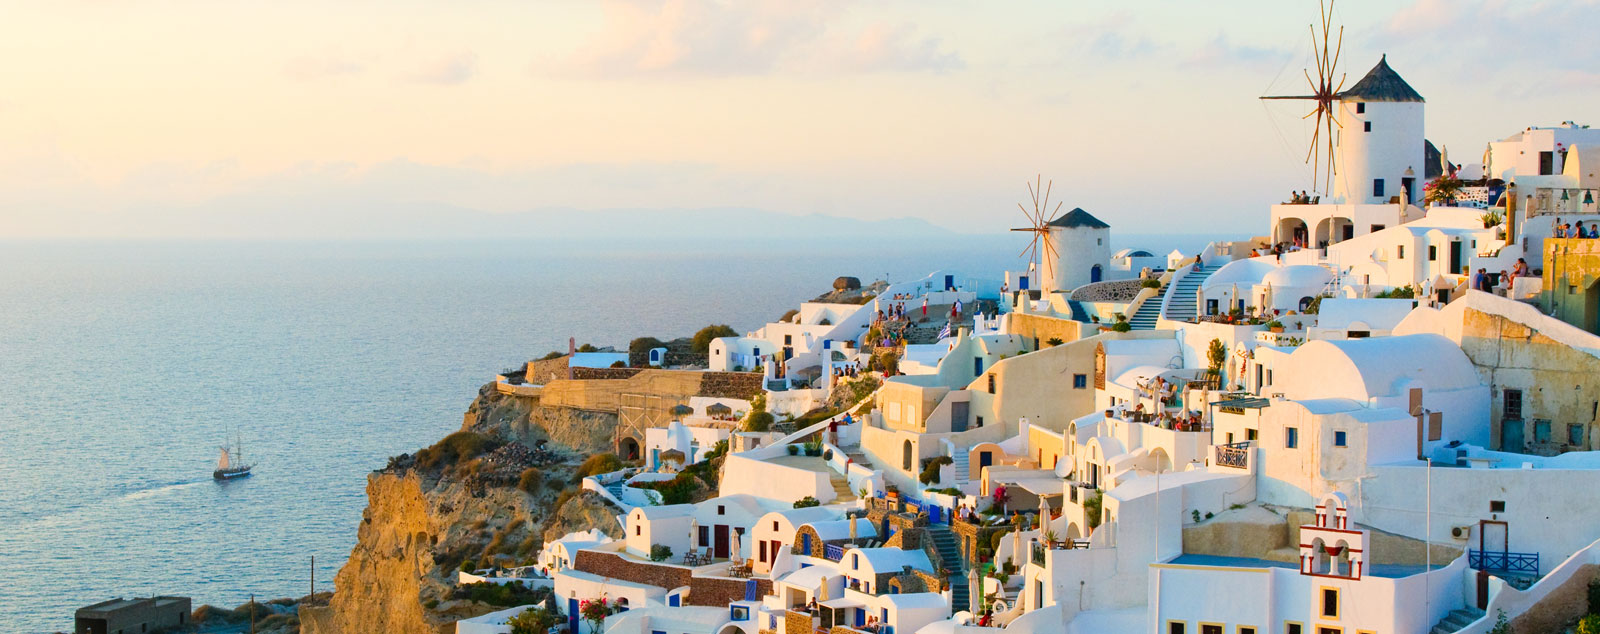 Whitewashed houses and windmills of Santorini atop a cliff